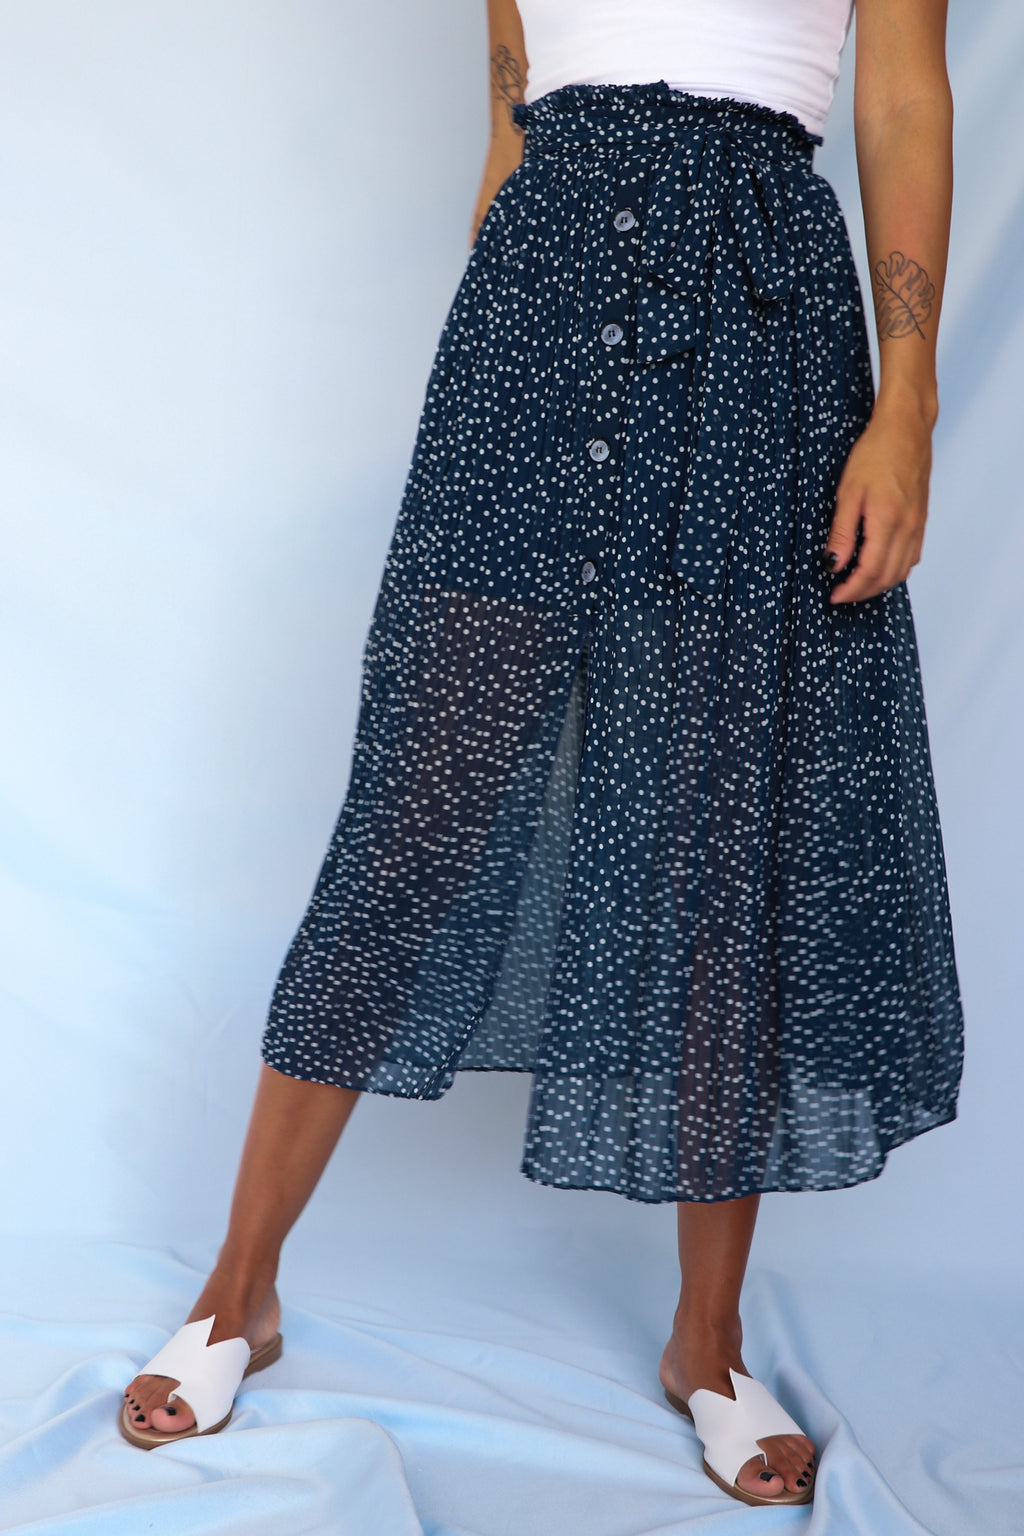 The Flawless Midi Skirt